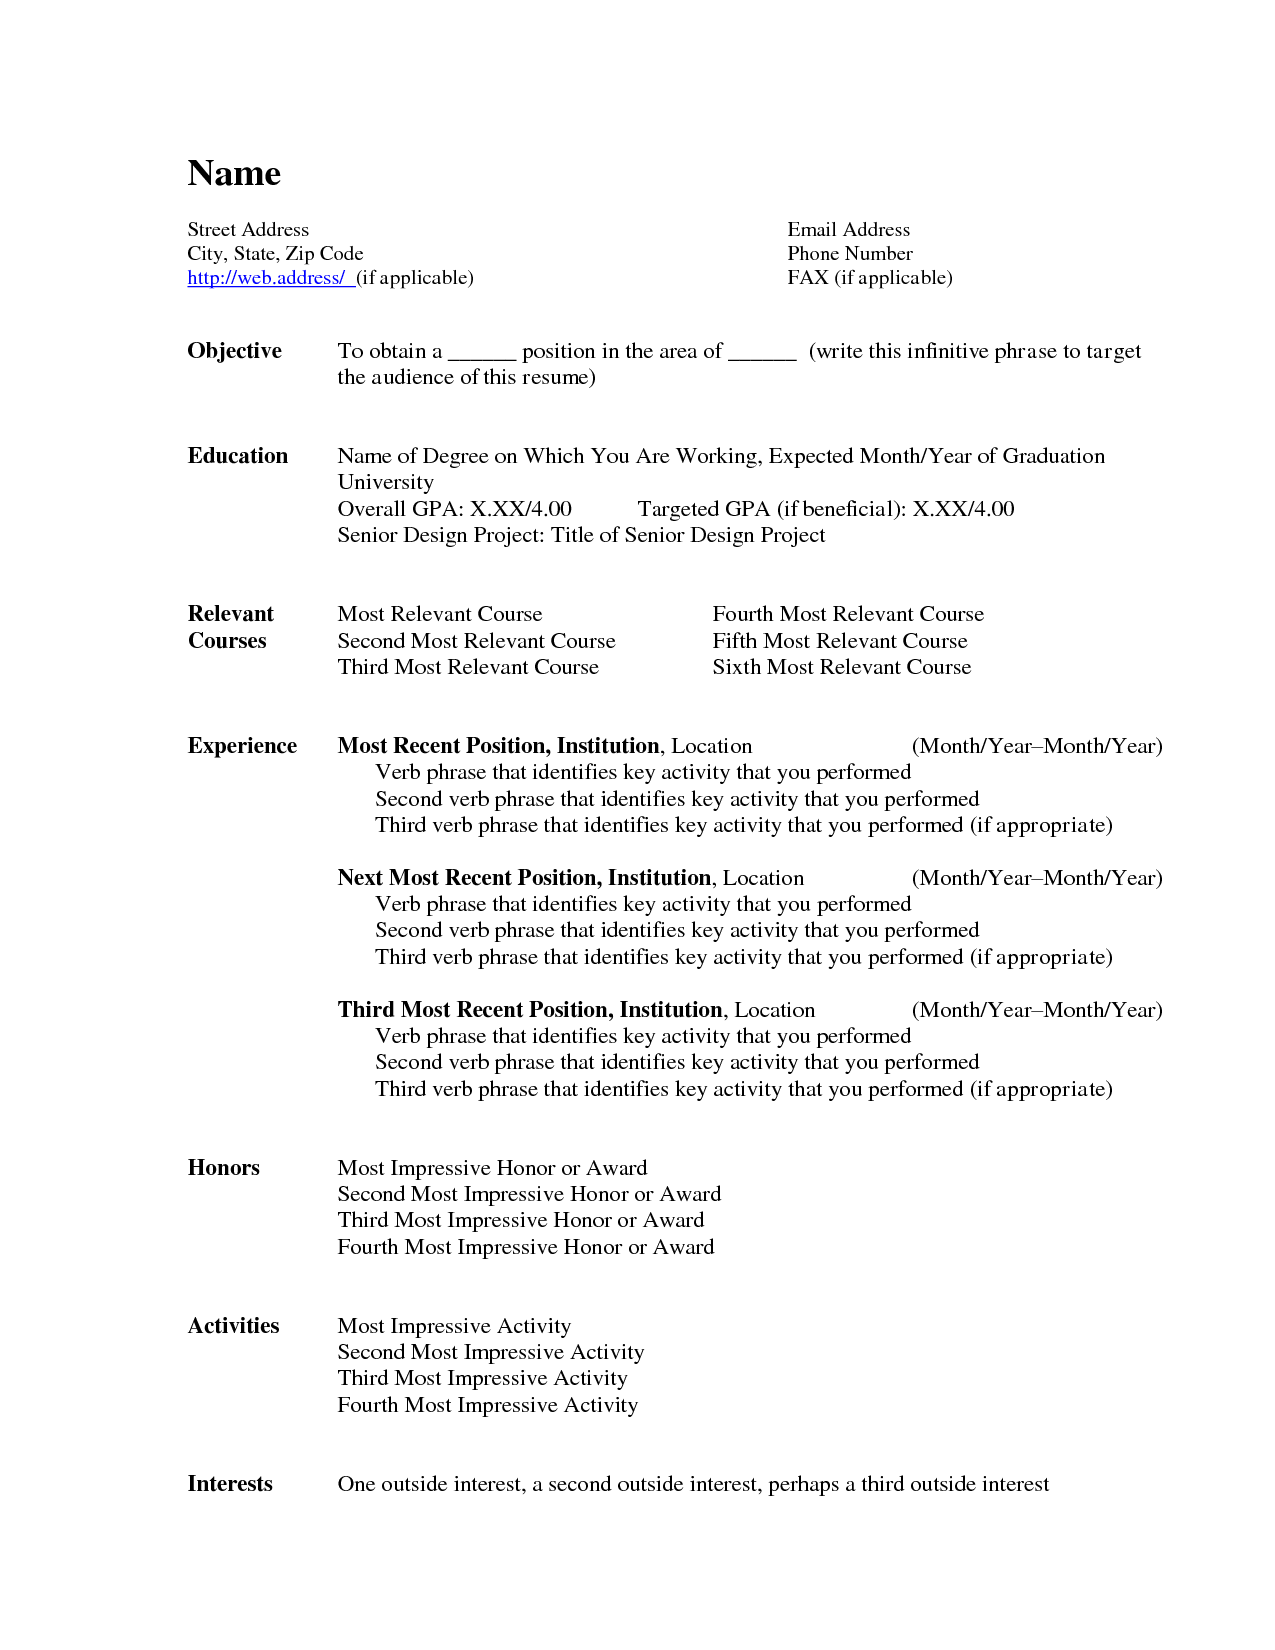 microsoft word resume template builder http job - Resume Template On Microsoft Word